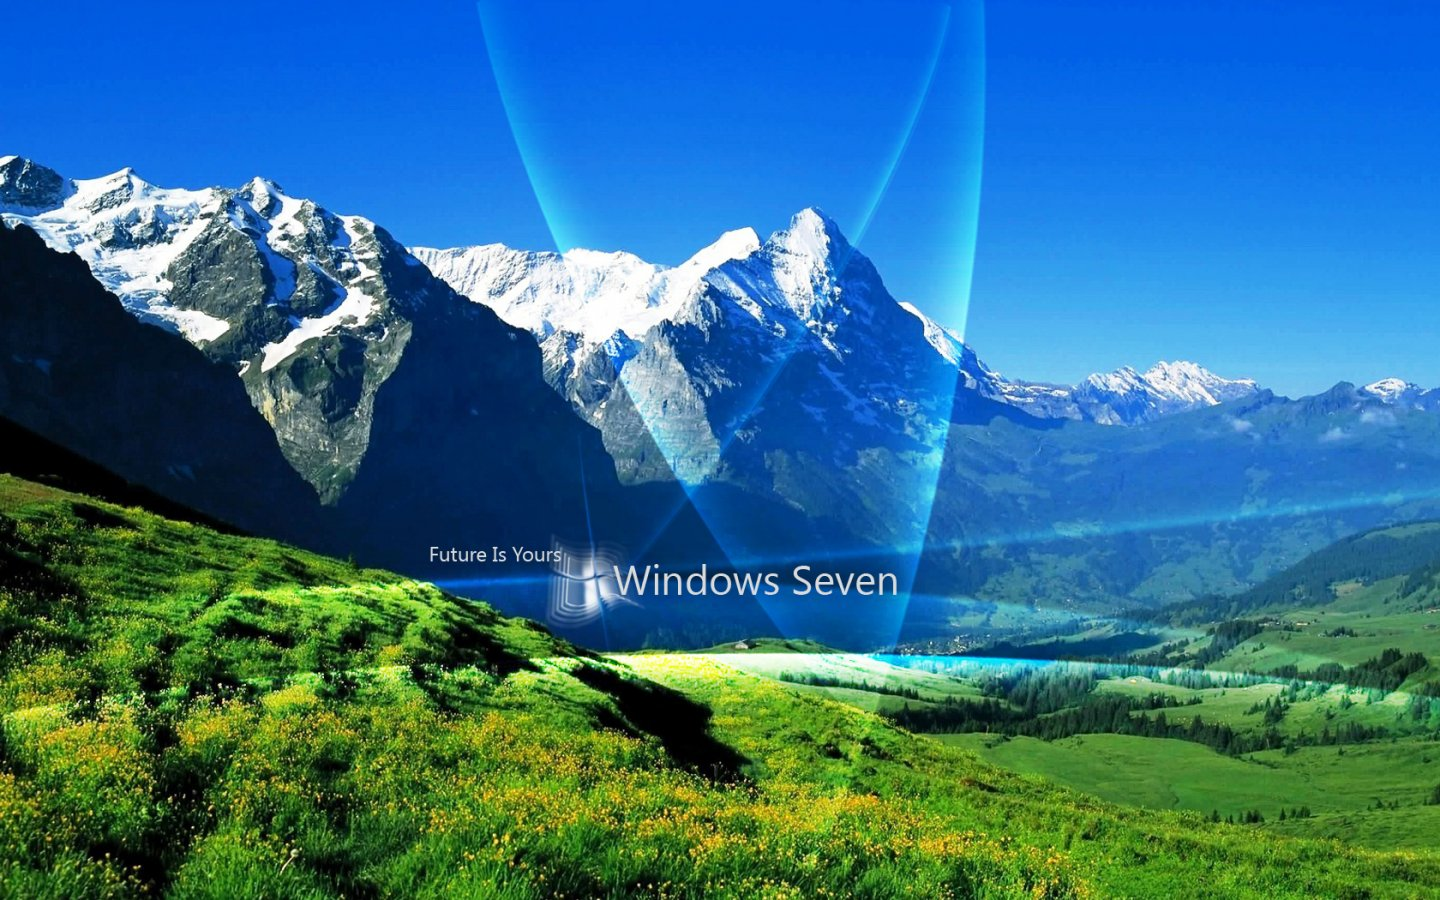 1440x900 Windows 7 Nature desktop PC and Mac wallpaper